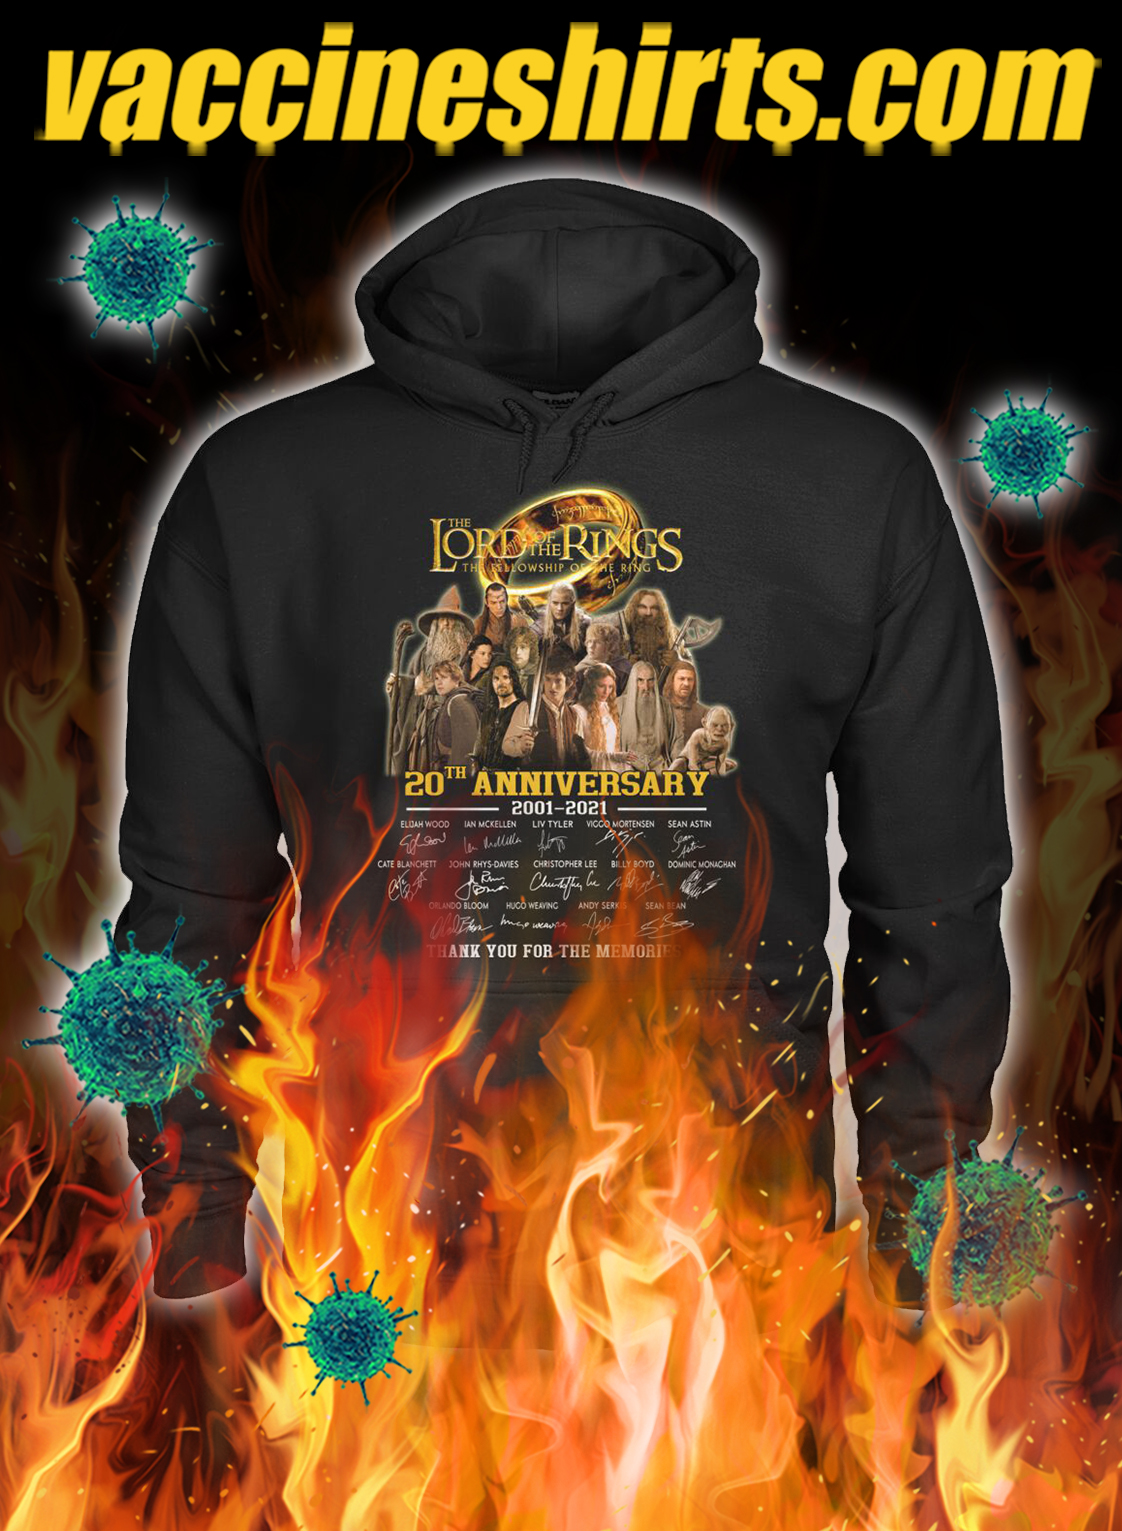 The lord of the rings 20th anniversary thank you for the memories hoodie